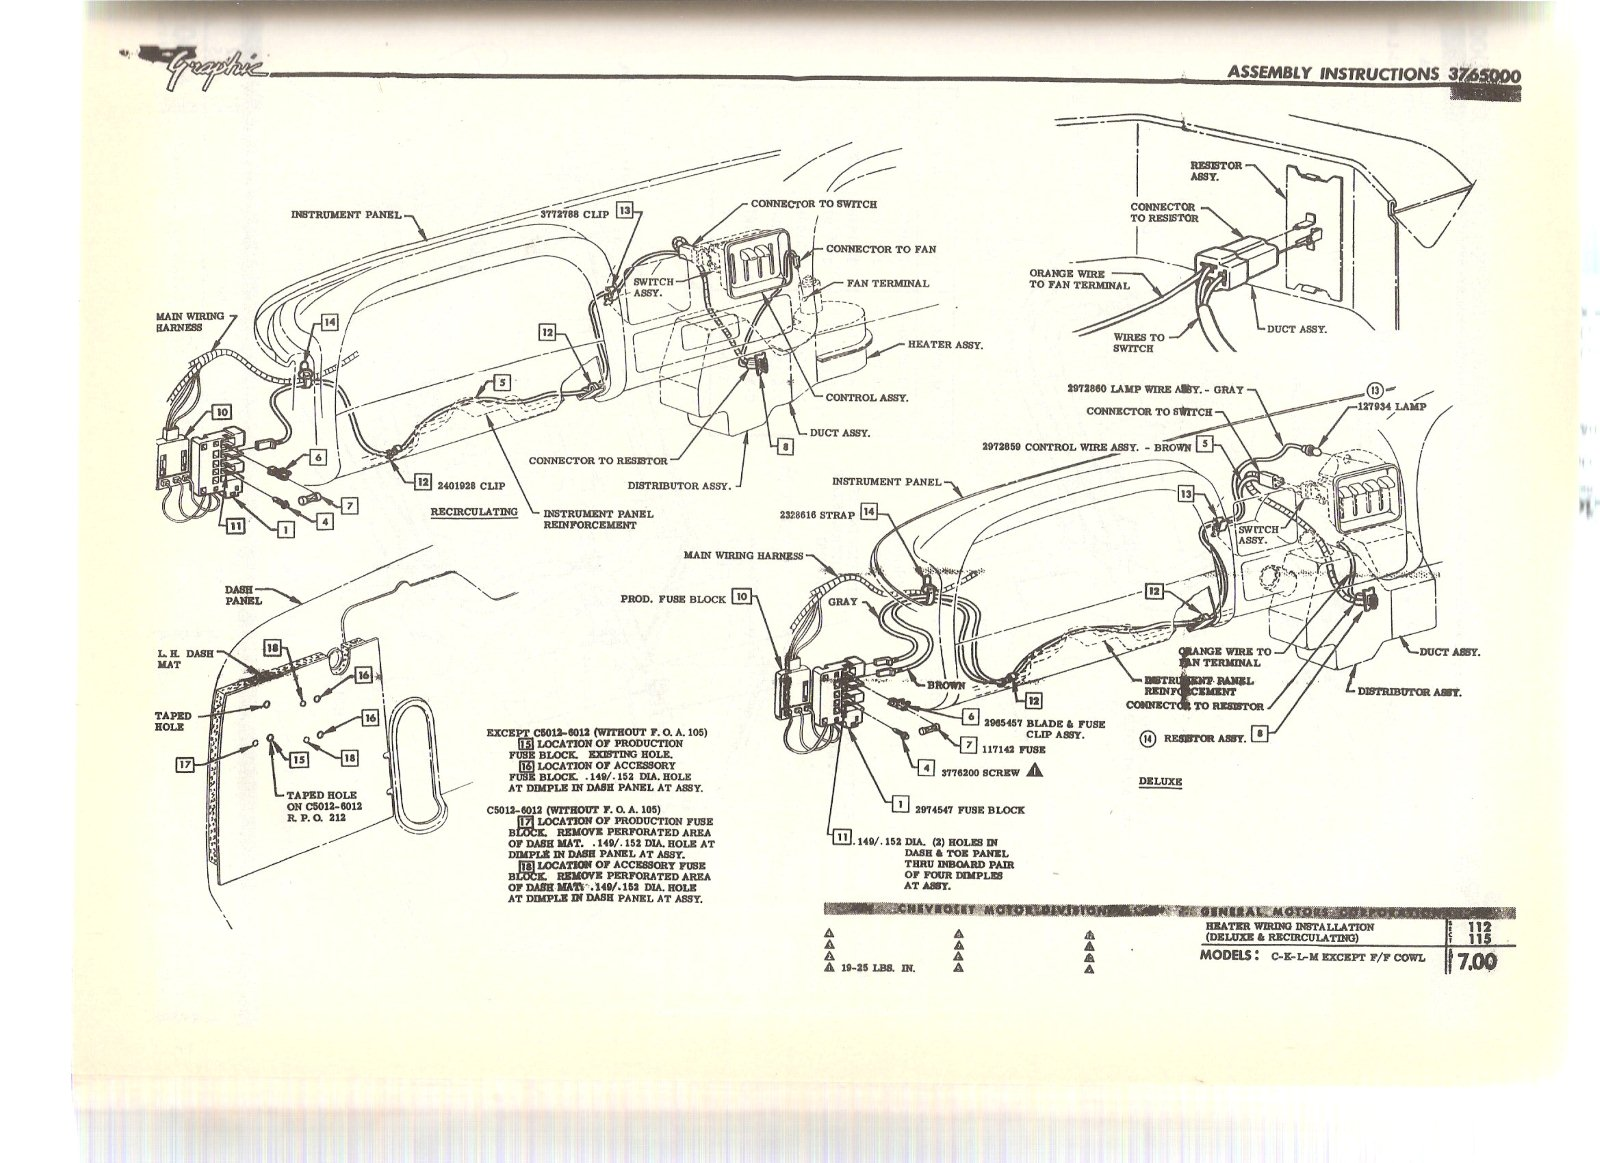 67 Chevelle Wiper Motor Wiring Diagram